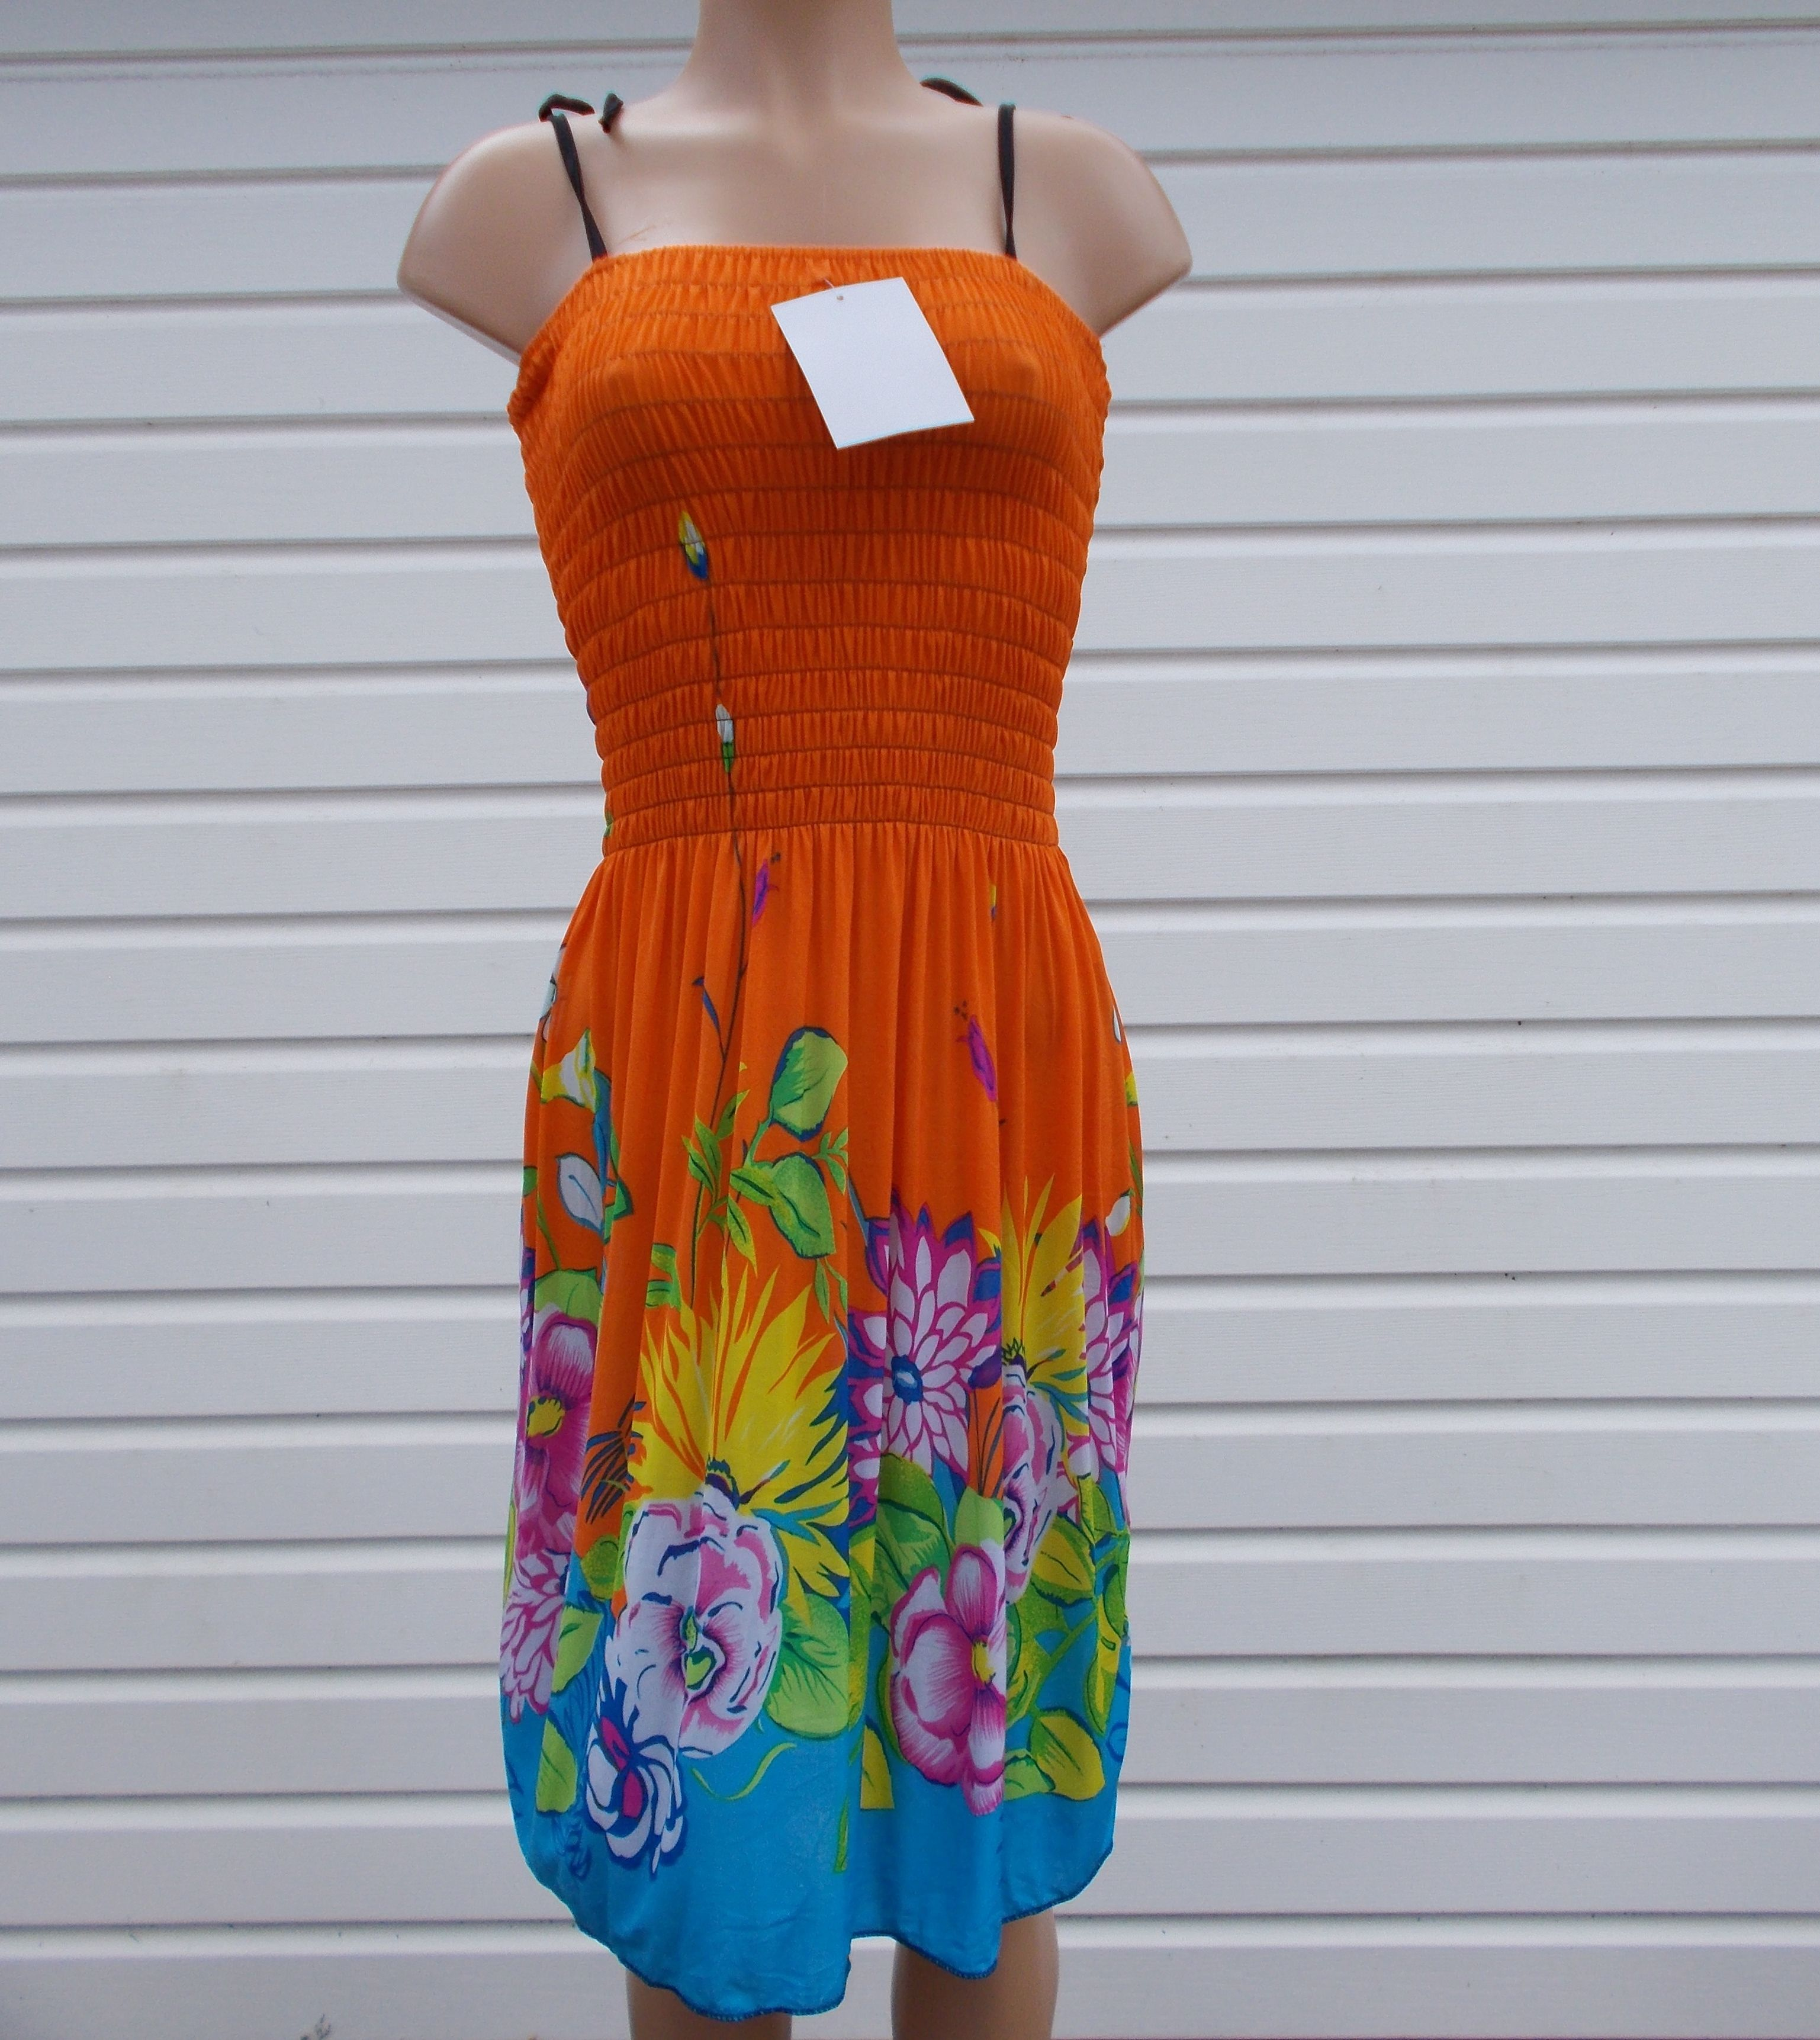 New Item Shi Yunlai sundress size large floral print multi color spaghetti strap material is polyester made in China I only ship to the USA - $14.95